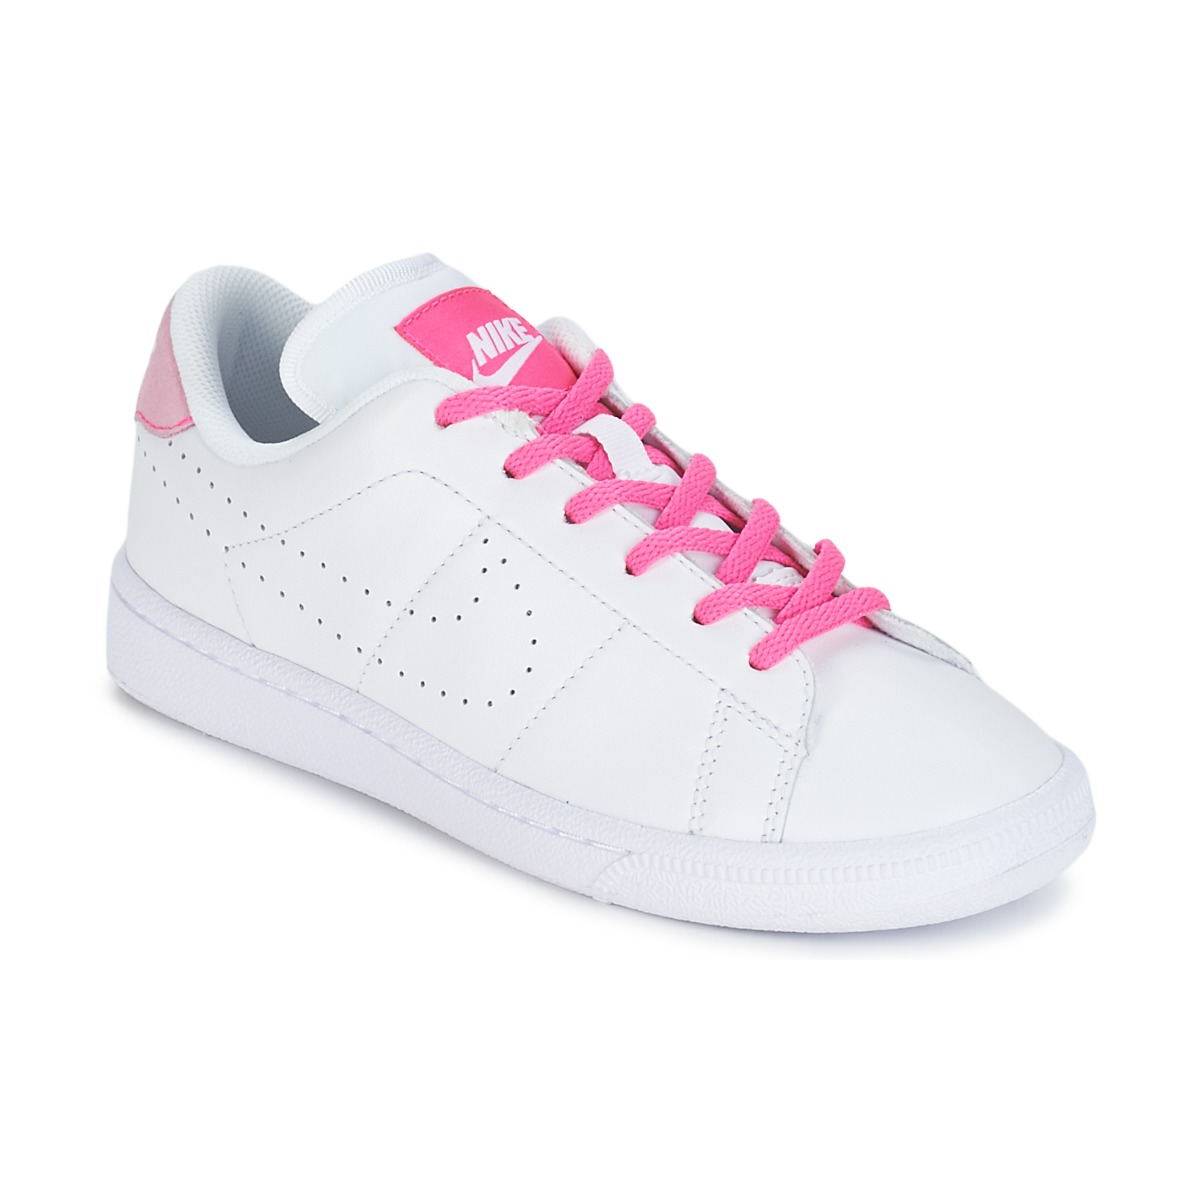 Nike TENNIS CLASSIC PREMIUM JUNIOR Blanc / Rose